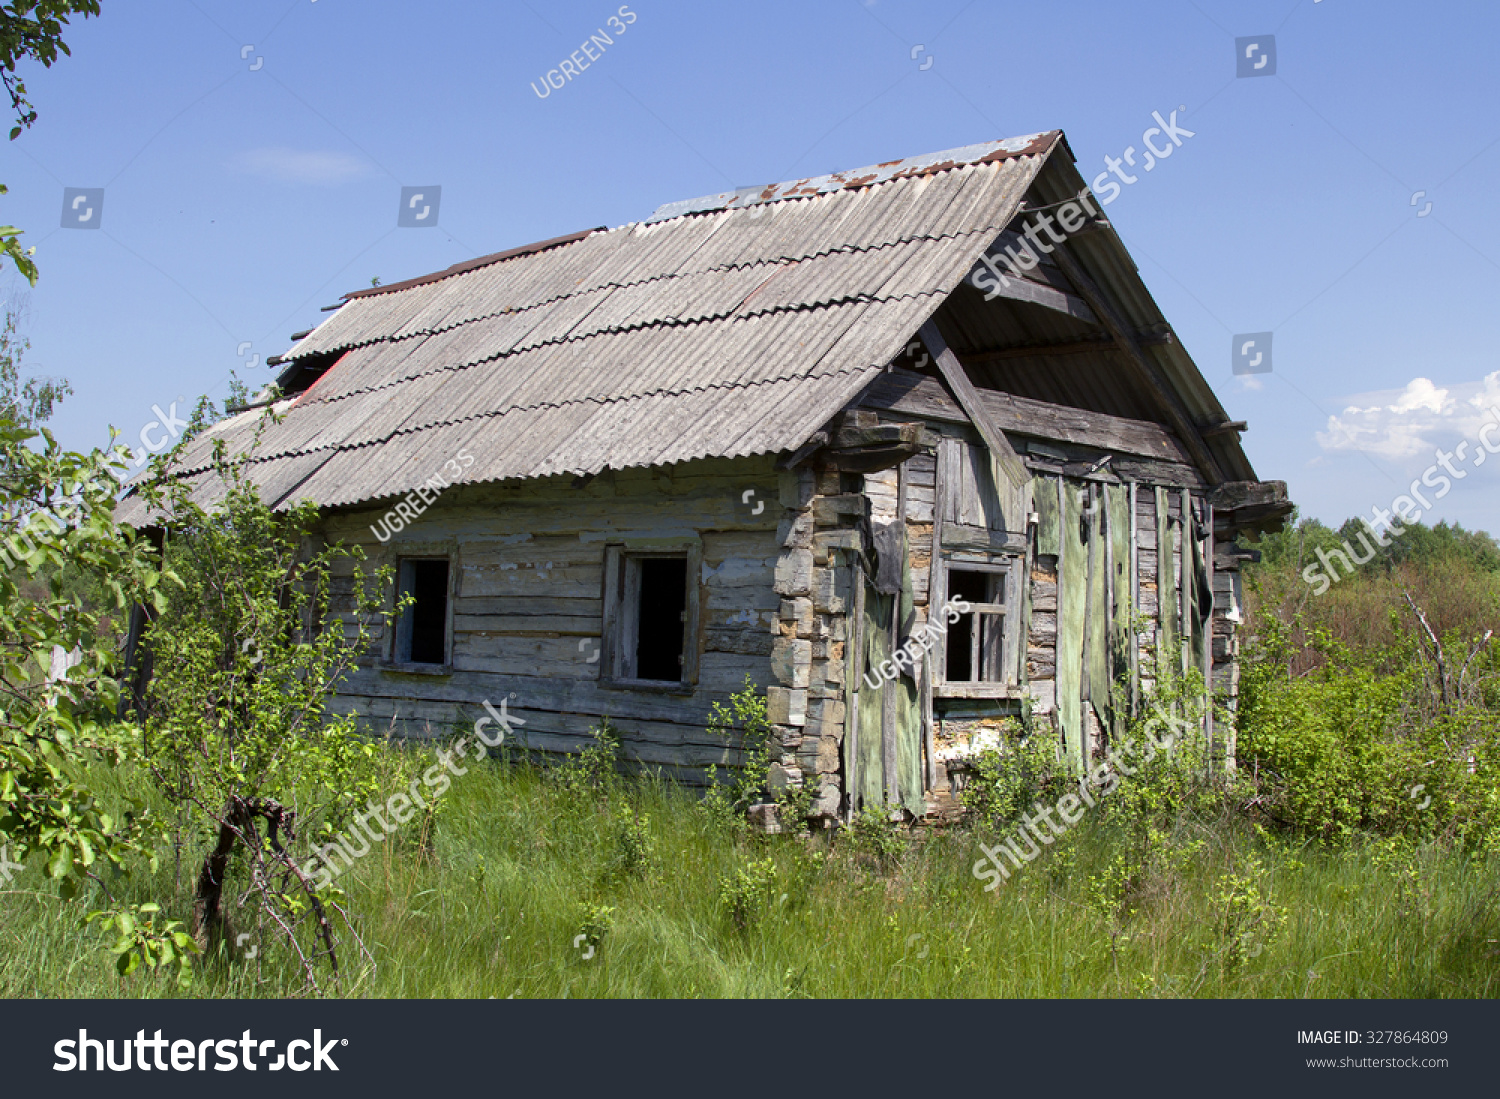 Old Wooden House Small Abandoned And Ruinous Country In Ukraine Buildings